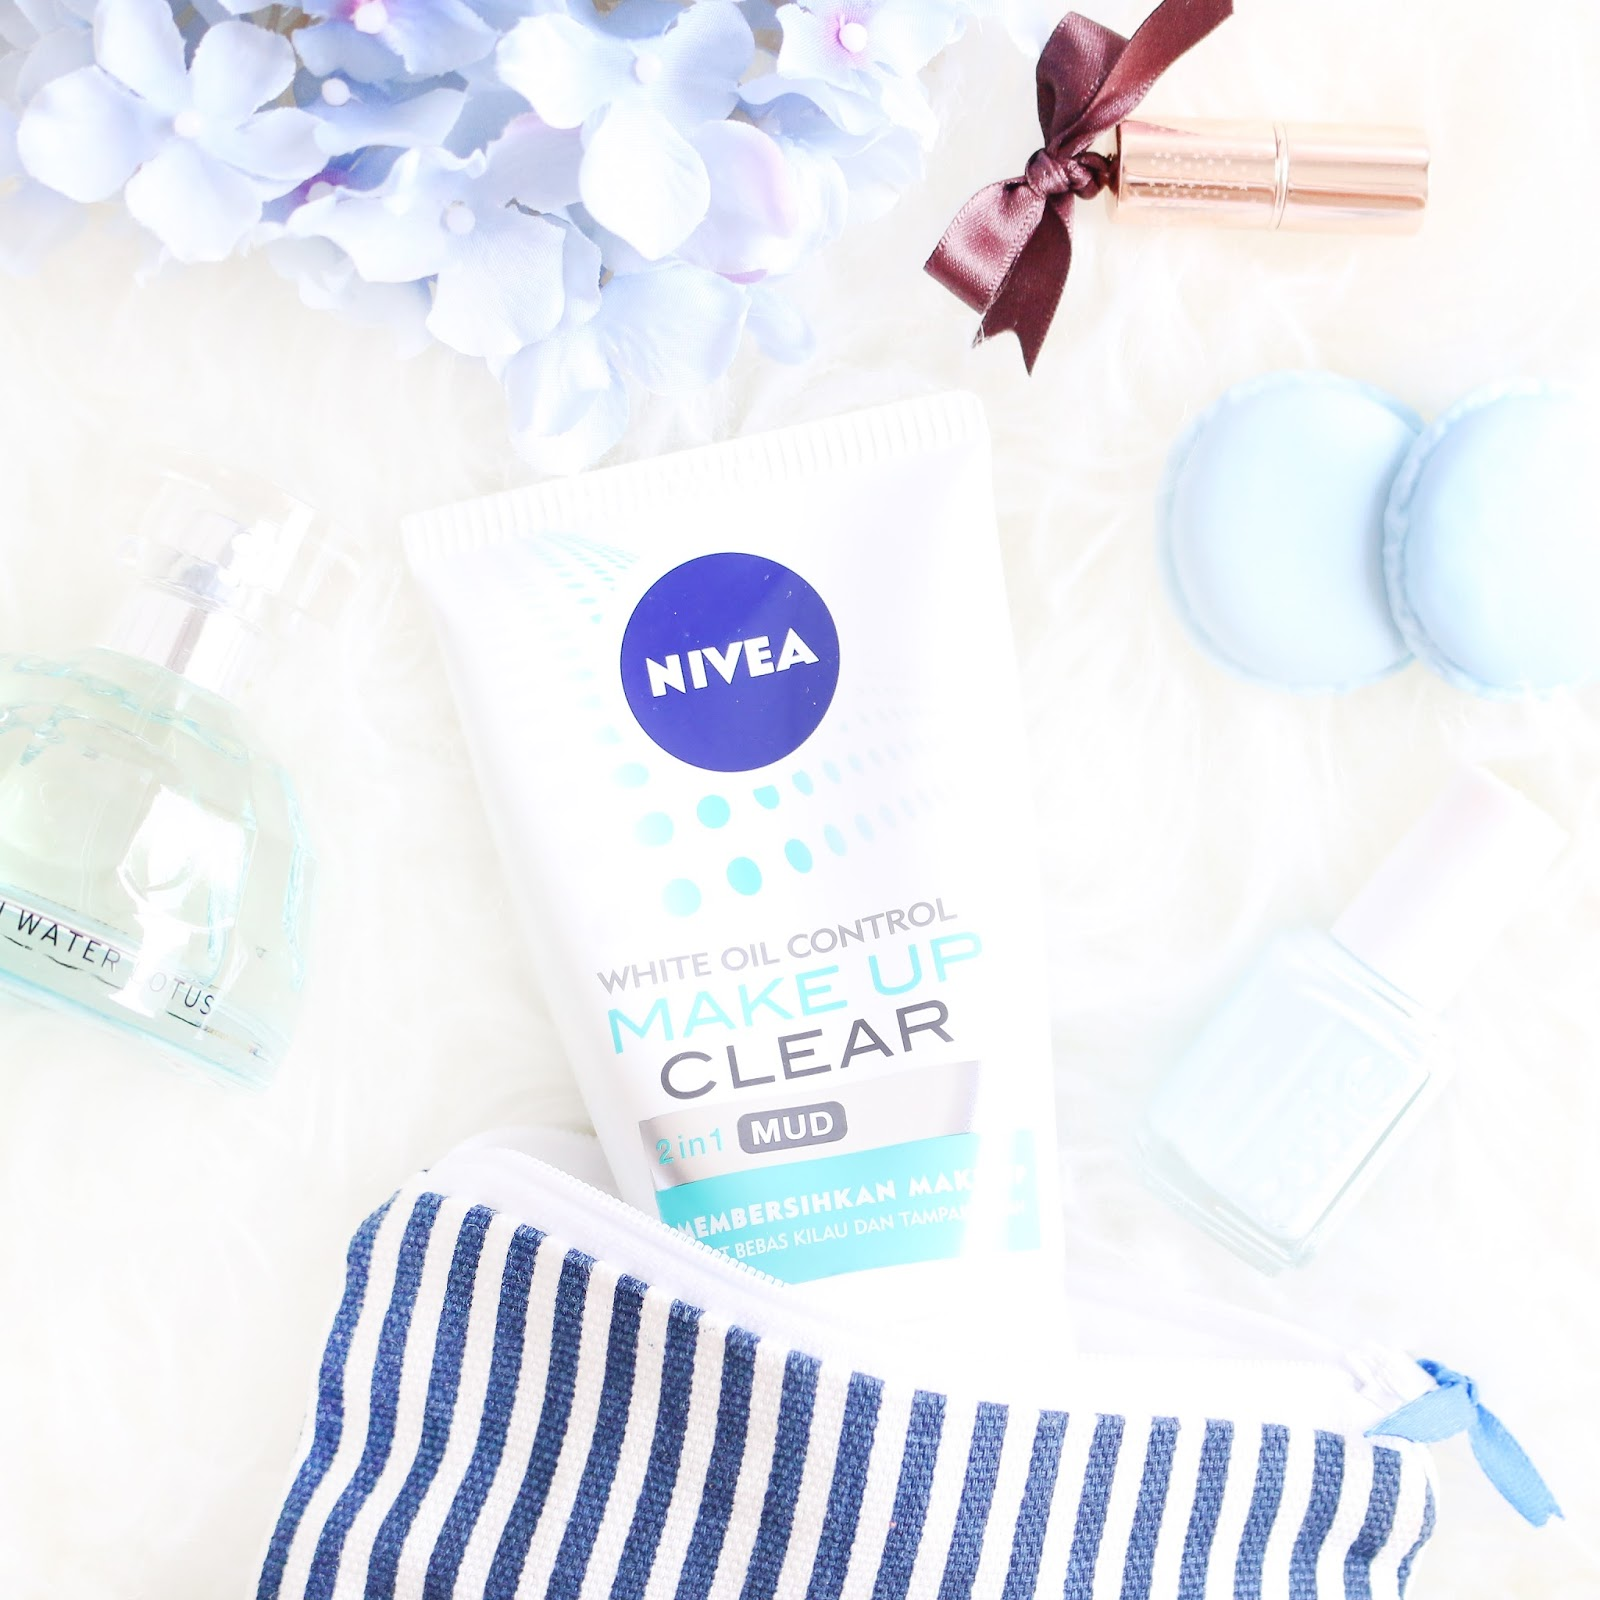 nivea, review nivea, nivea makeup clear, nivea indonesia, review nivea make up clear, nivea make up clear, skincare, drugstore, nivea skincare, oily skin, kulit berminyak